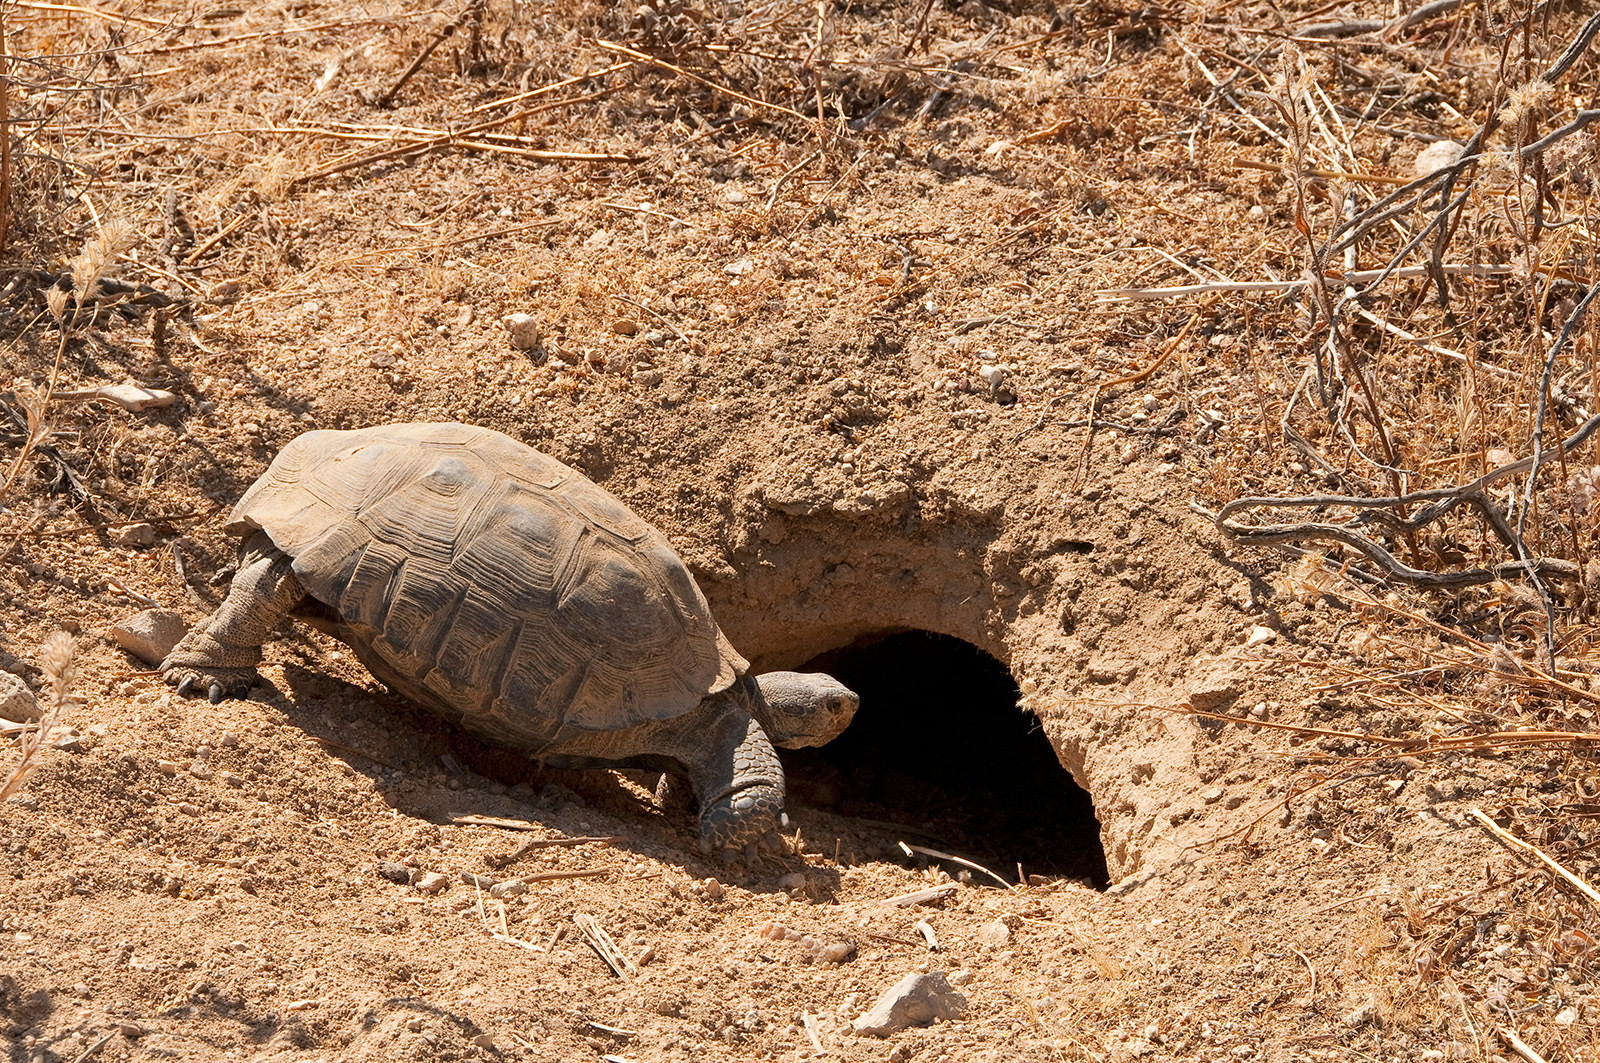 Tortoise protection on native lands